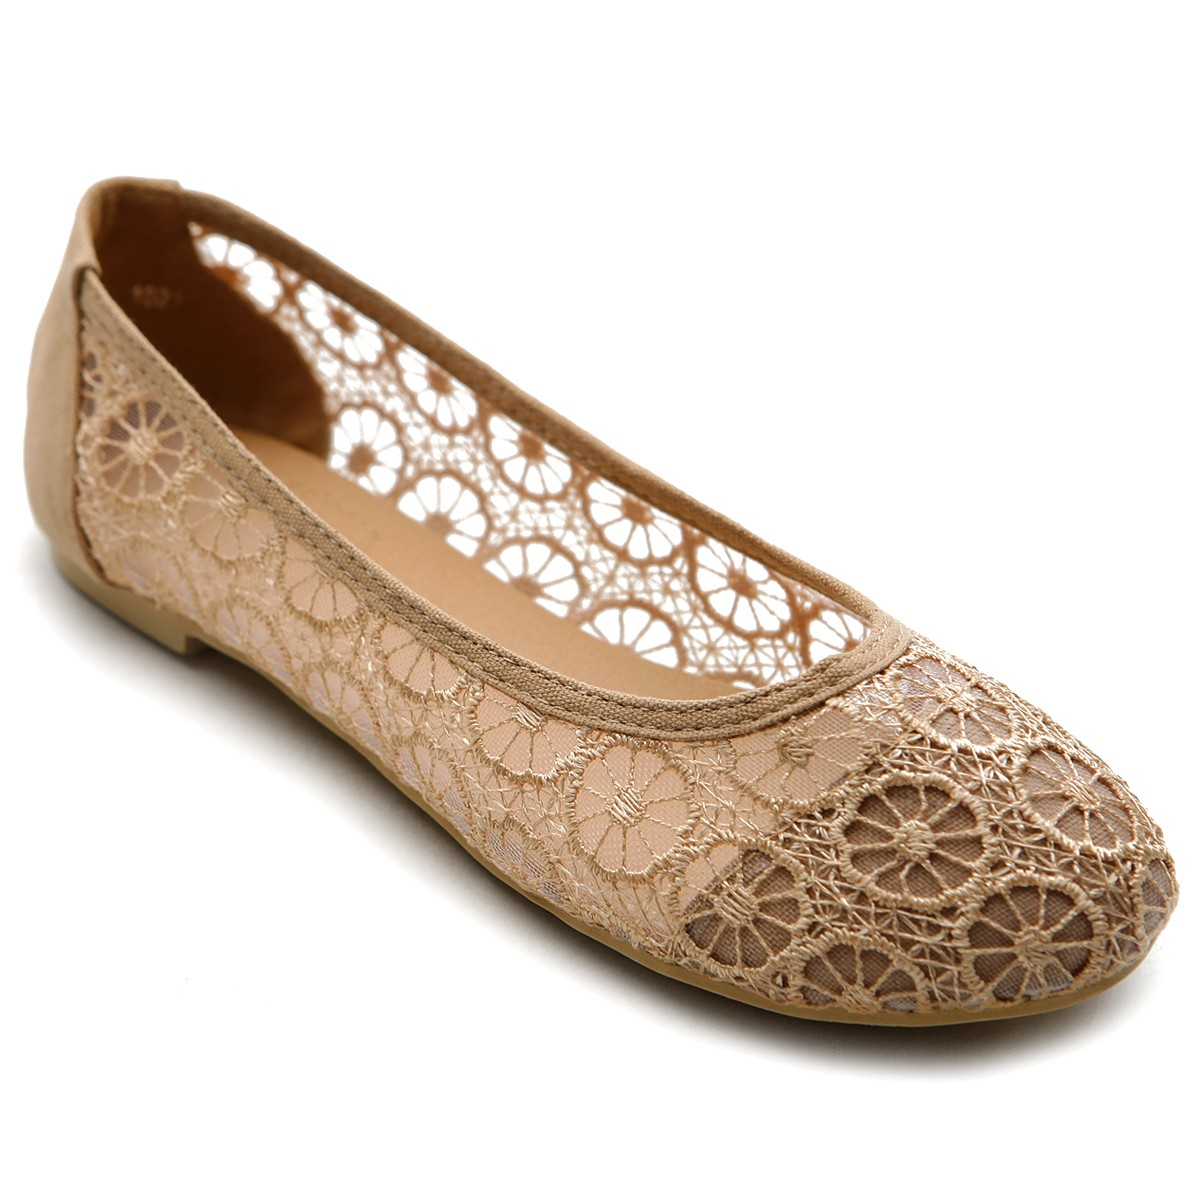 Ollio Womens Floral Lace Ballet Flats Loafers Low Heels